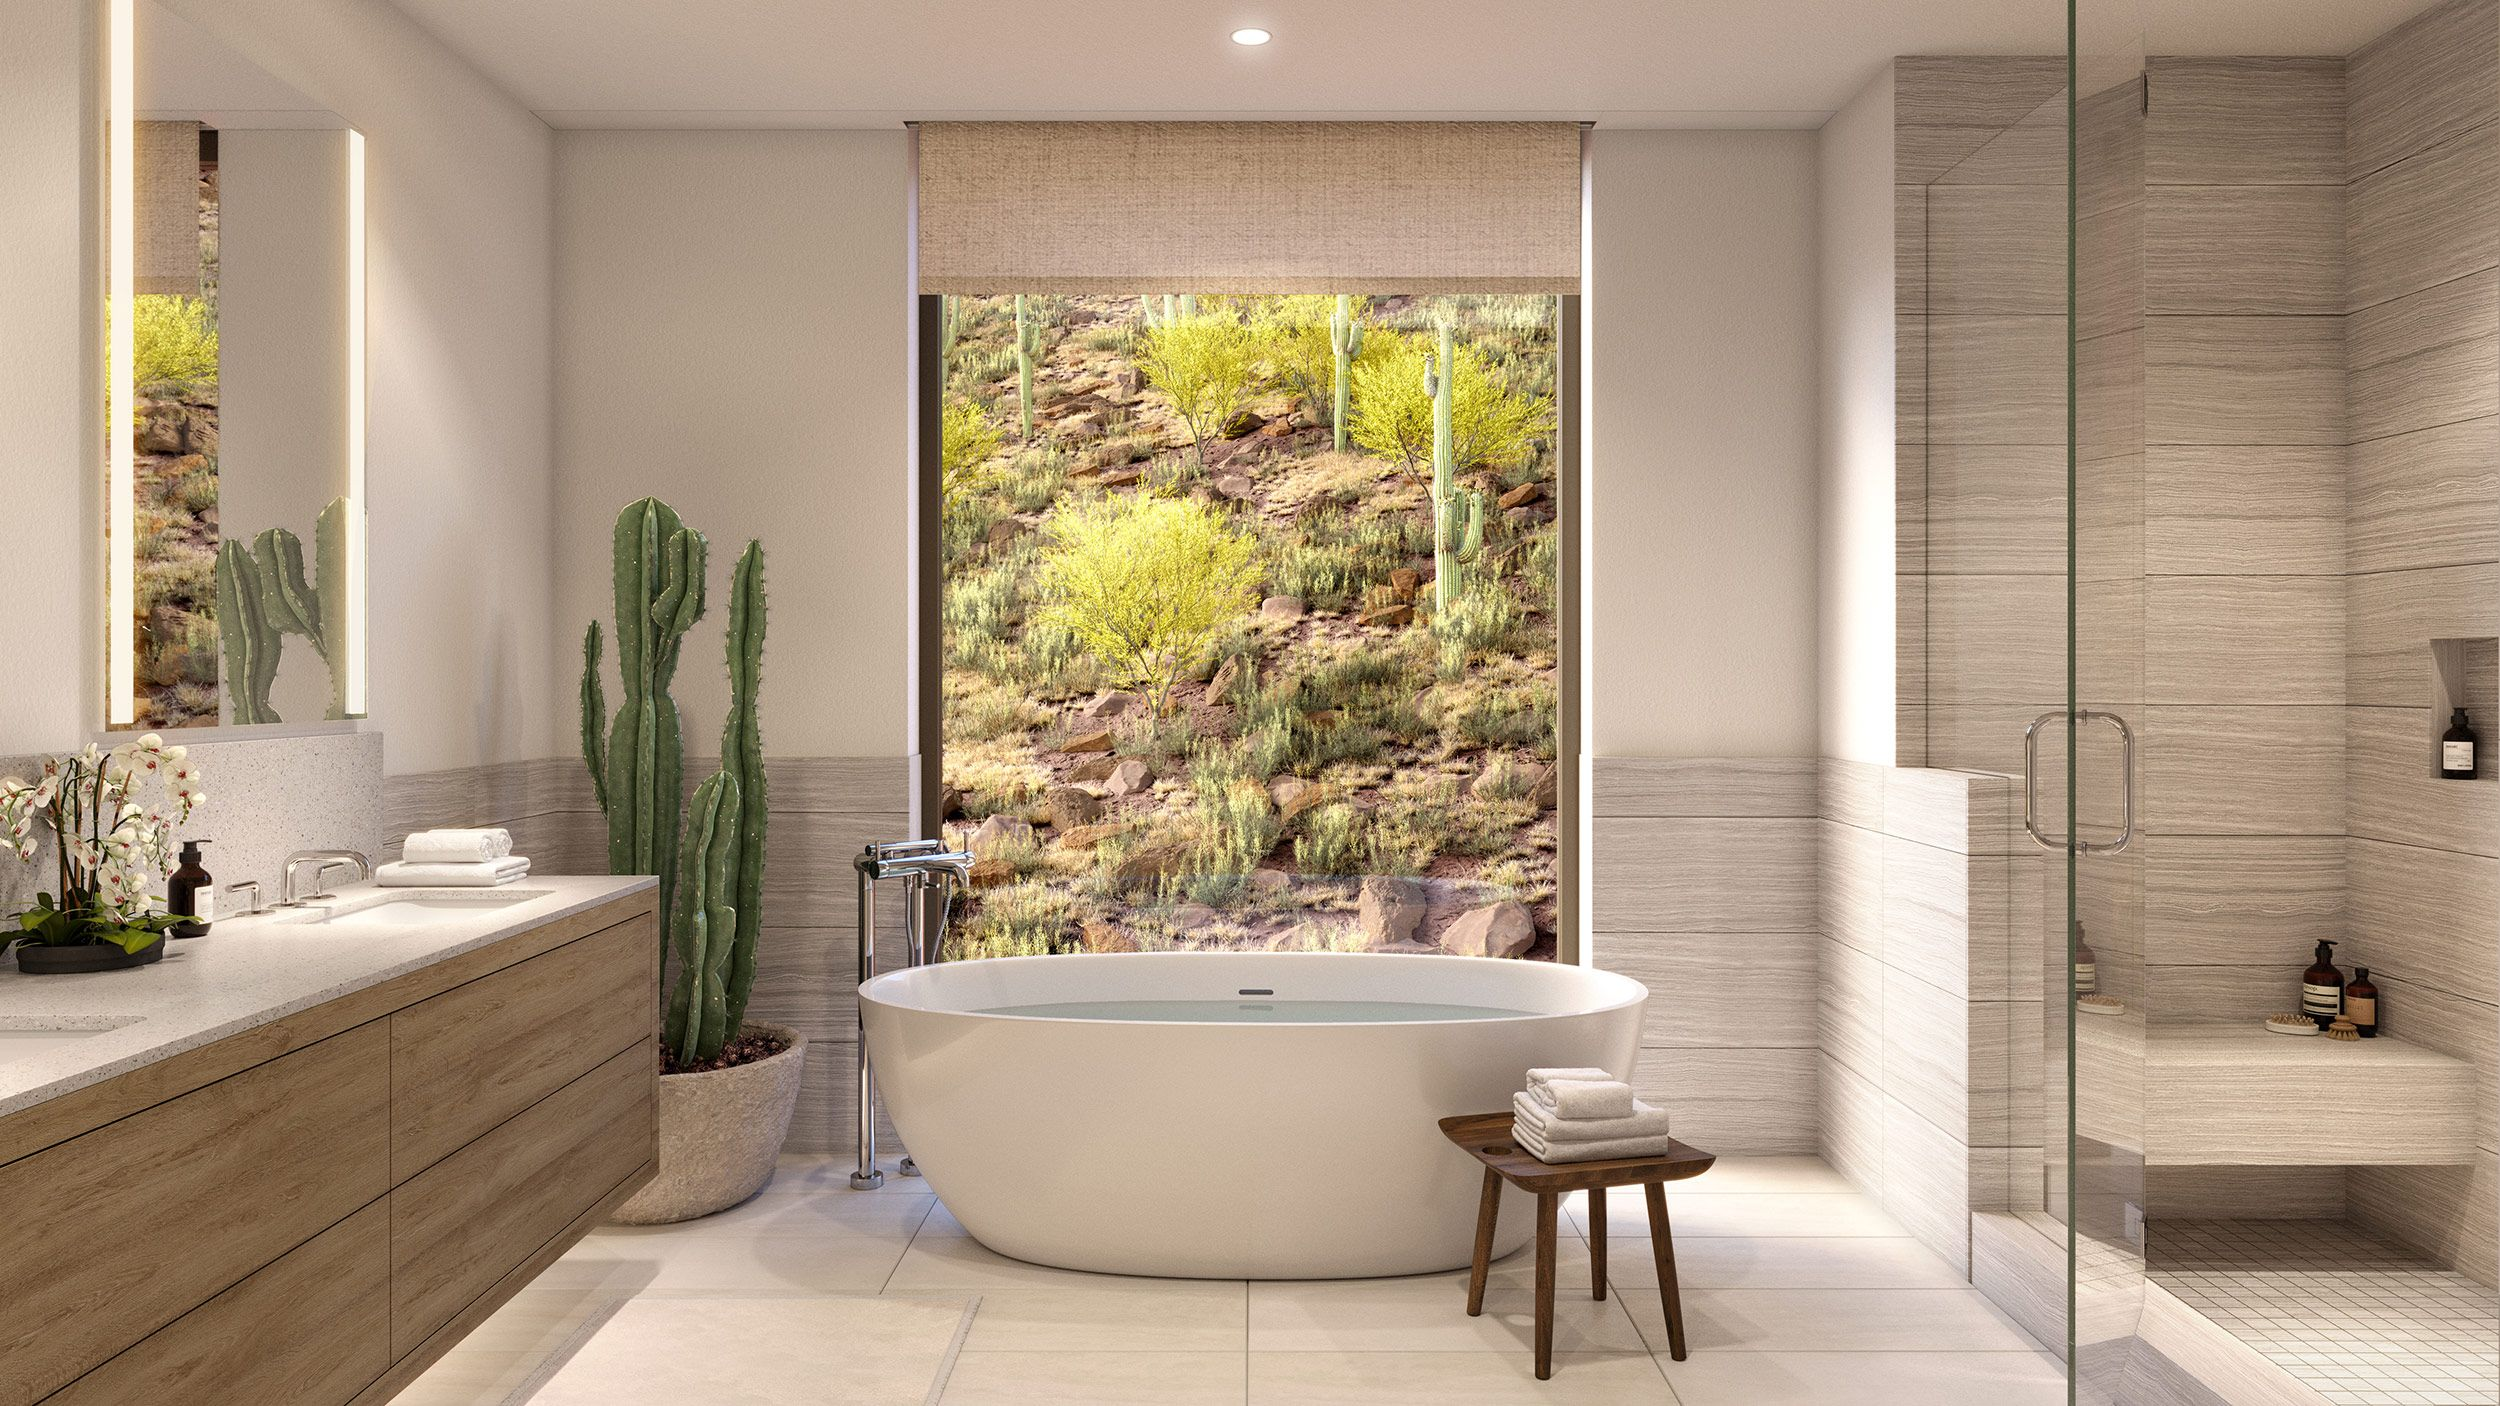 Spa-inspired master bathrooms featuring frameless glass shower, freestanding tub, and elegant Waterworks fixtures.